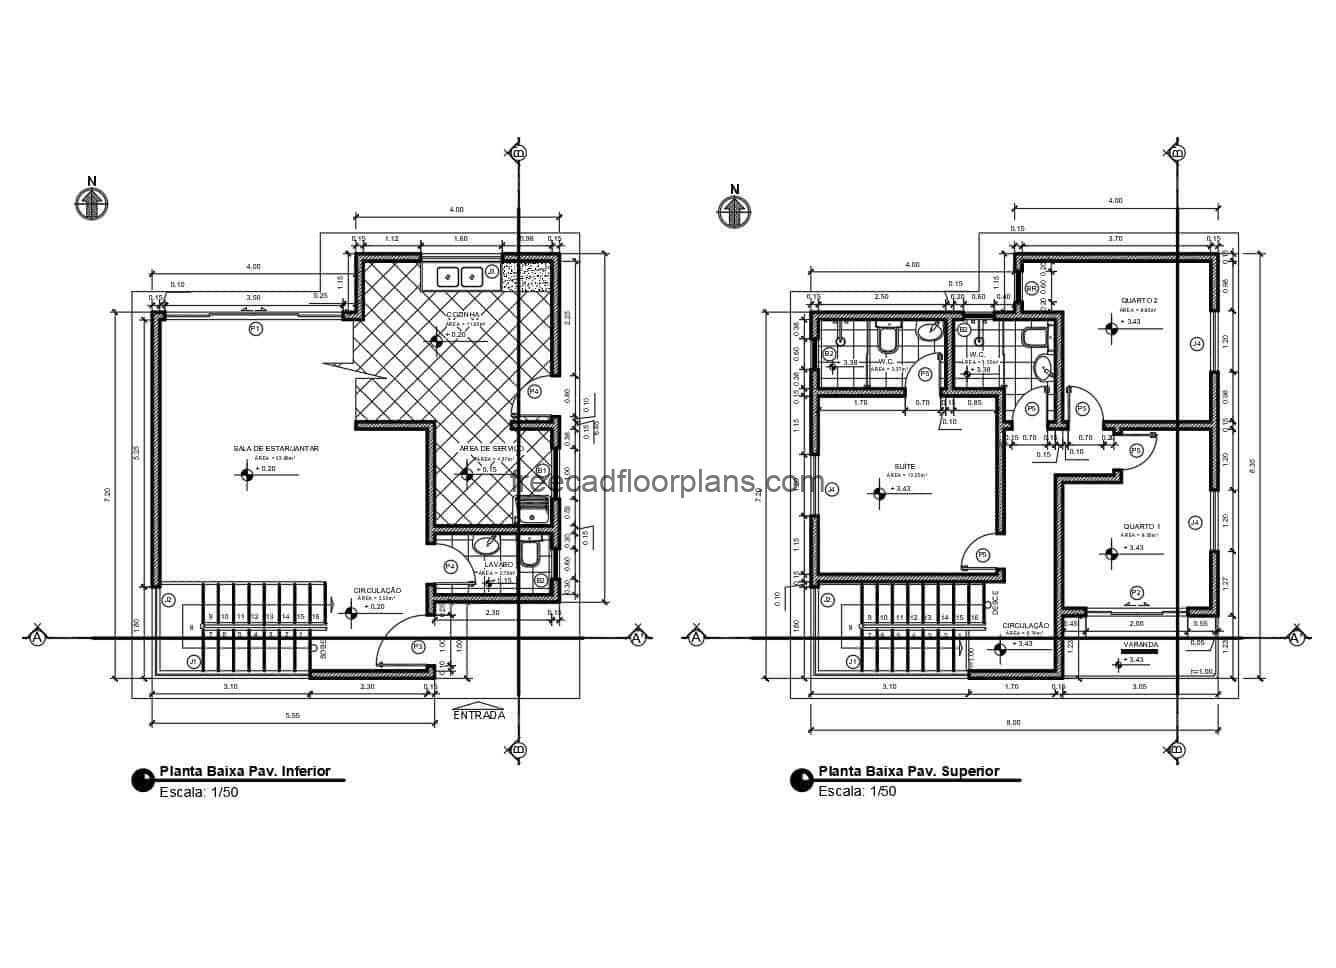 simple architectural plant of small house in DWG format